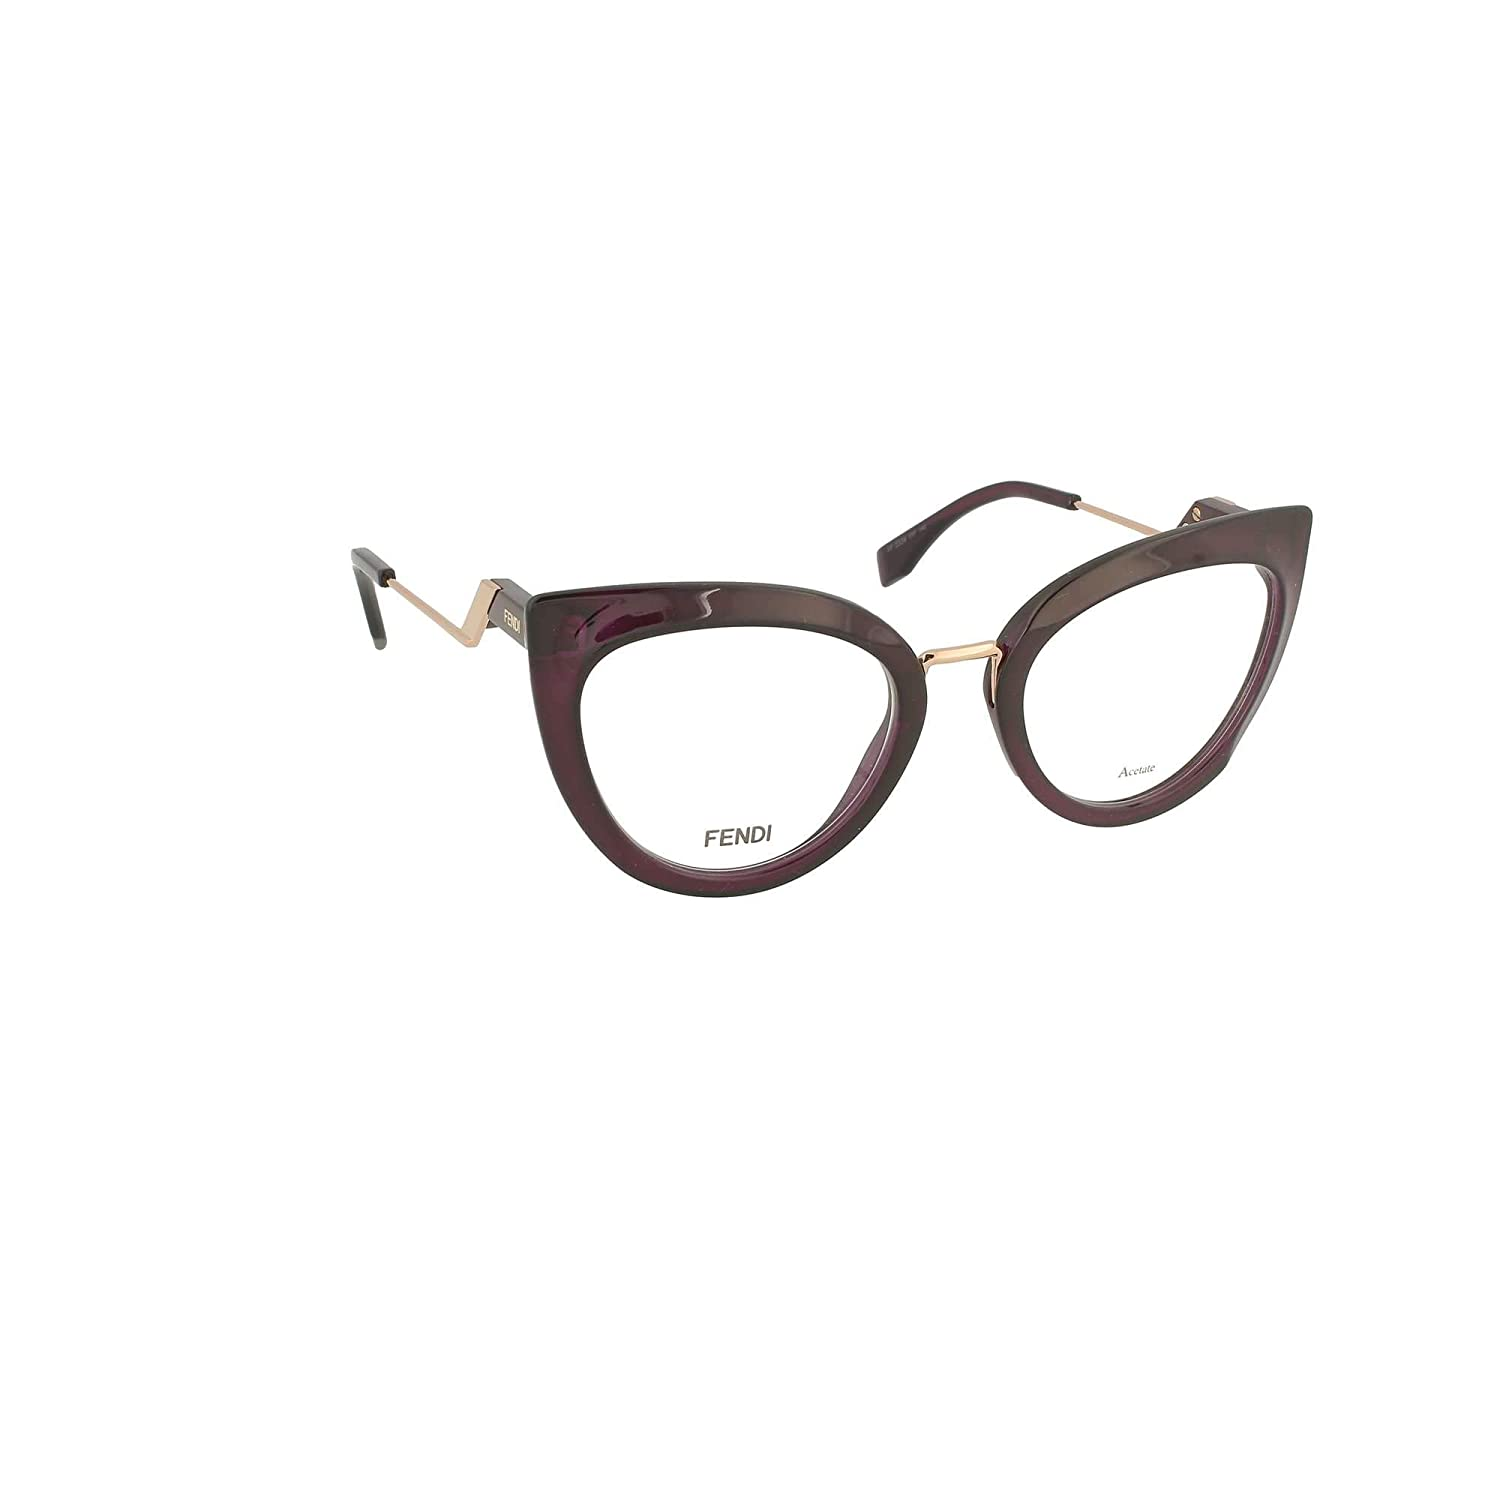 a8c7d0838bb Amazon.com  Fendi FF 0334 0T7 Eyeglasses Plum Frame 51mm  Clothing